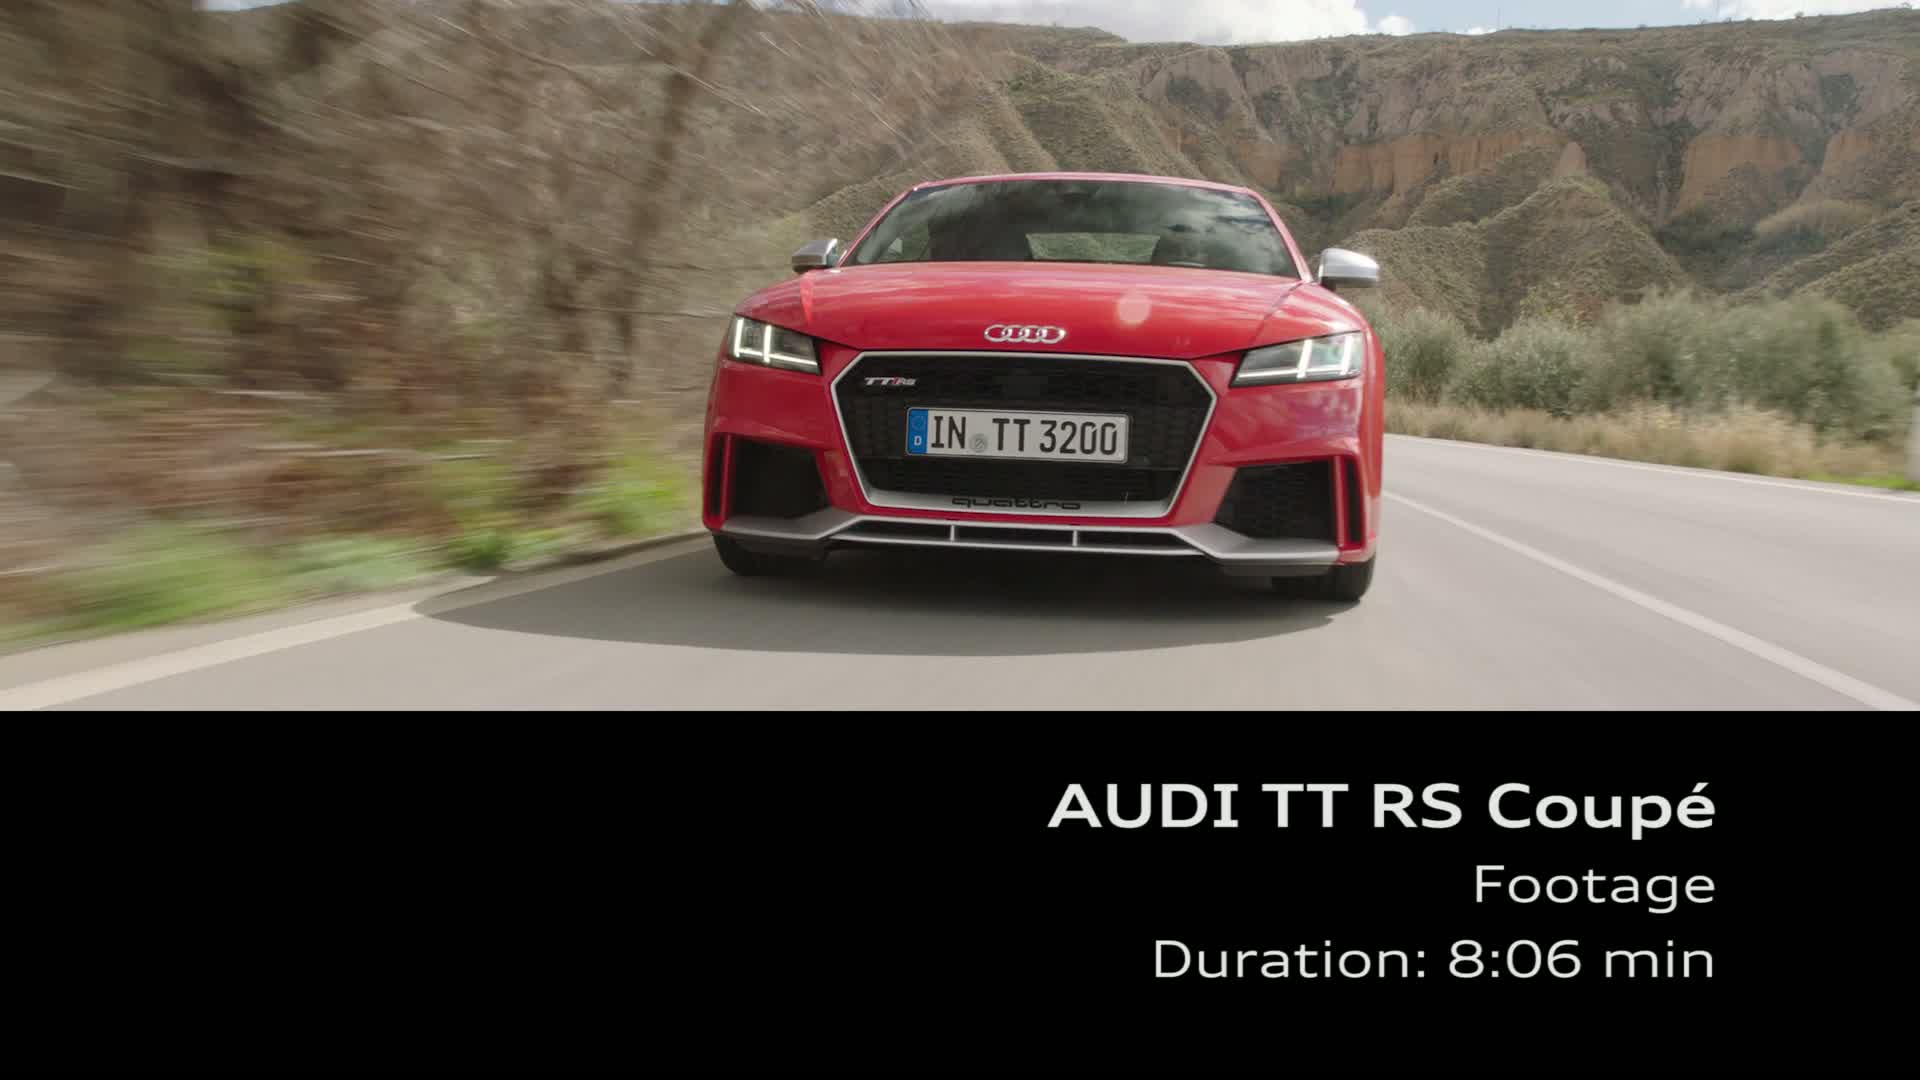 Audi TT RS Coupé - Footage